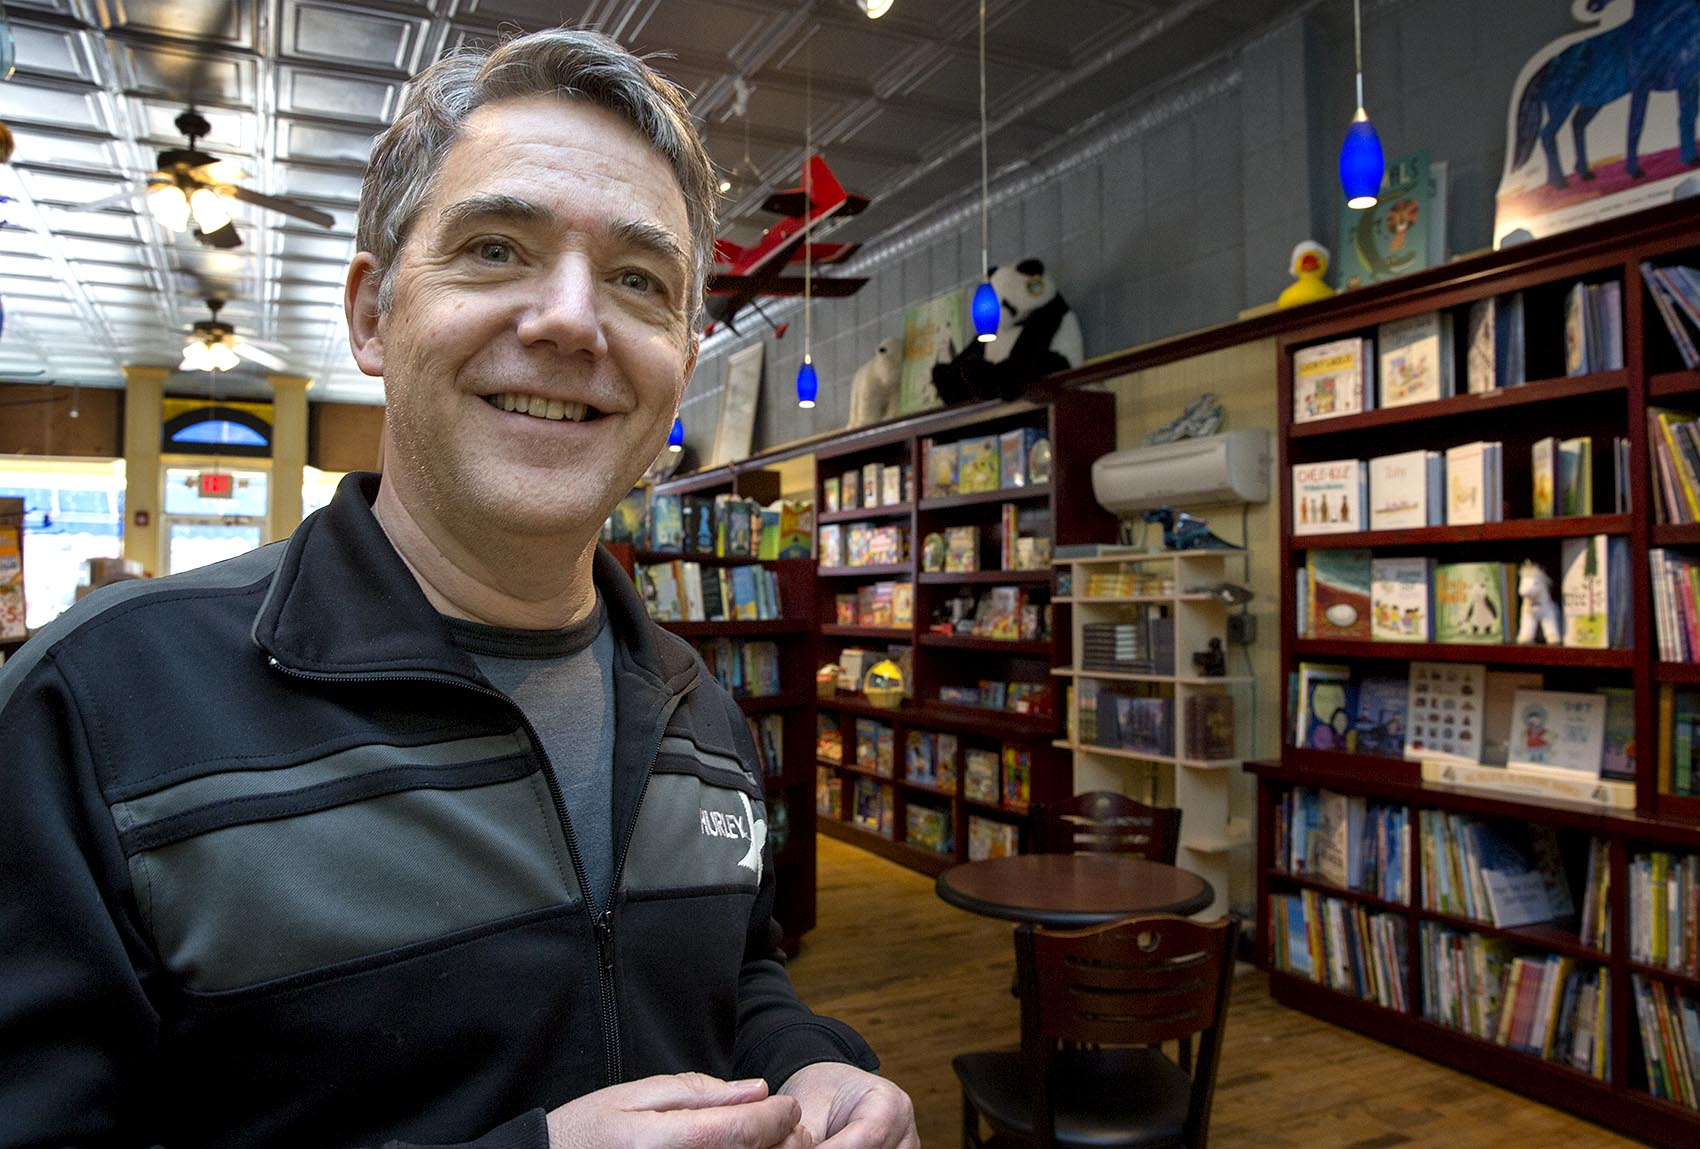 Peter H. Reynolds, owner of The Blue Bunny Bookstore in Dedham stands surrounded by books on the day Amazon also opened a bookstore in the town. He said independent bookstores are an endangered species and need to be supported so they can stick around. (Robin Lubbock/WBUR)